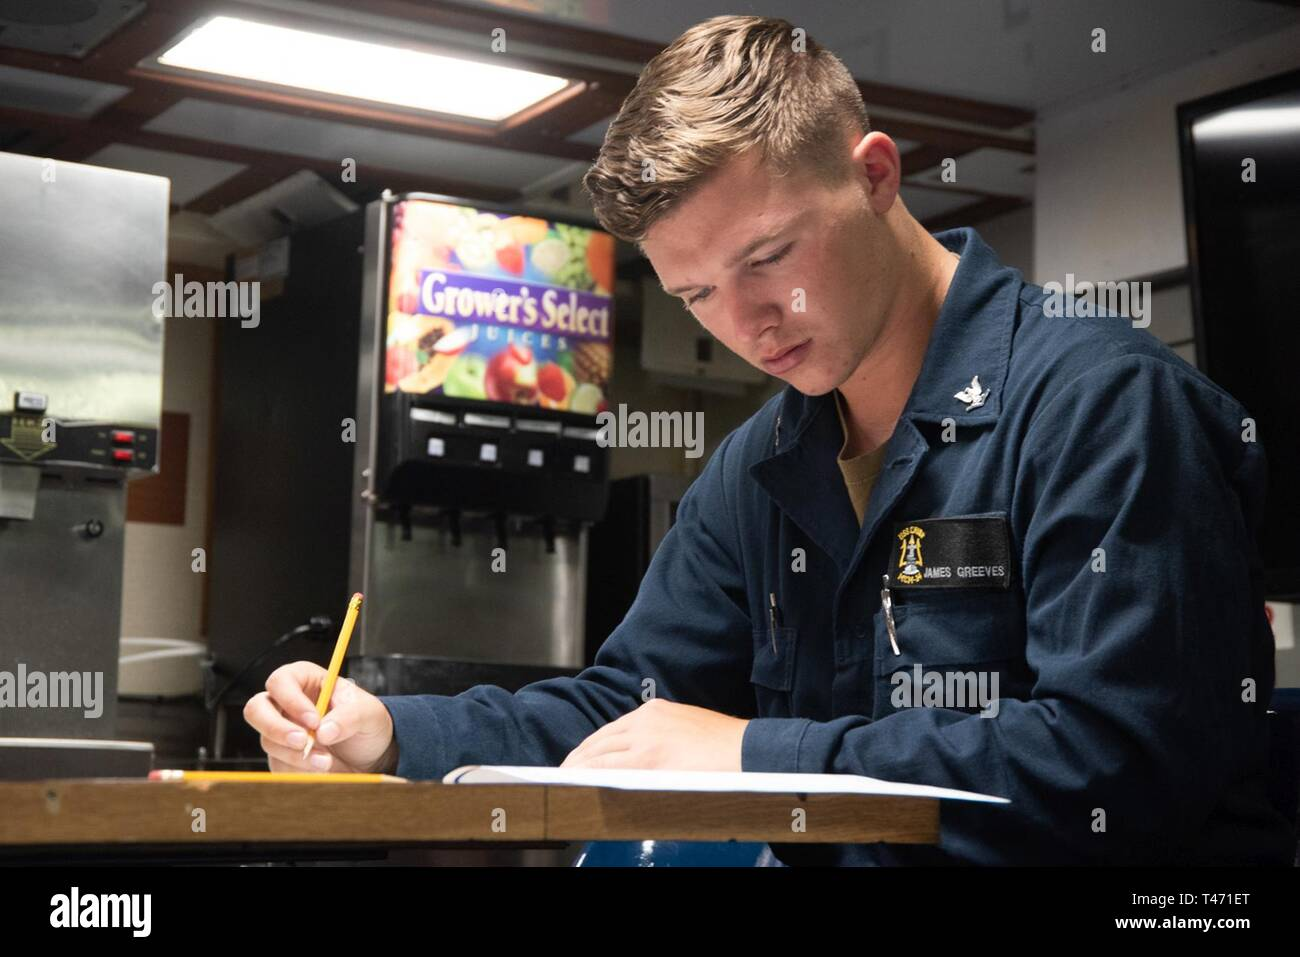 SOUTH CHINA SEA (March 14, 2019) Information Systems Technician 3rd Class James Greeves from Naples, Florida, takes the Navy-wide petty officer 2nd class advancement exam on the mess deck of the Avenger-class mine countermeasures ship USS Chief (MCM 14). Chief, part of Mine Countermeasure Squadron 7, is operating in the Indo-Pacific region to enhance interoperability with partners and serve as a ready-response platform for contingency operations. - Stock Image